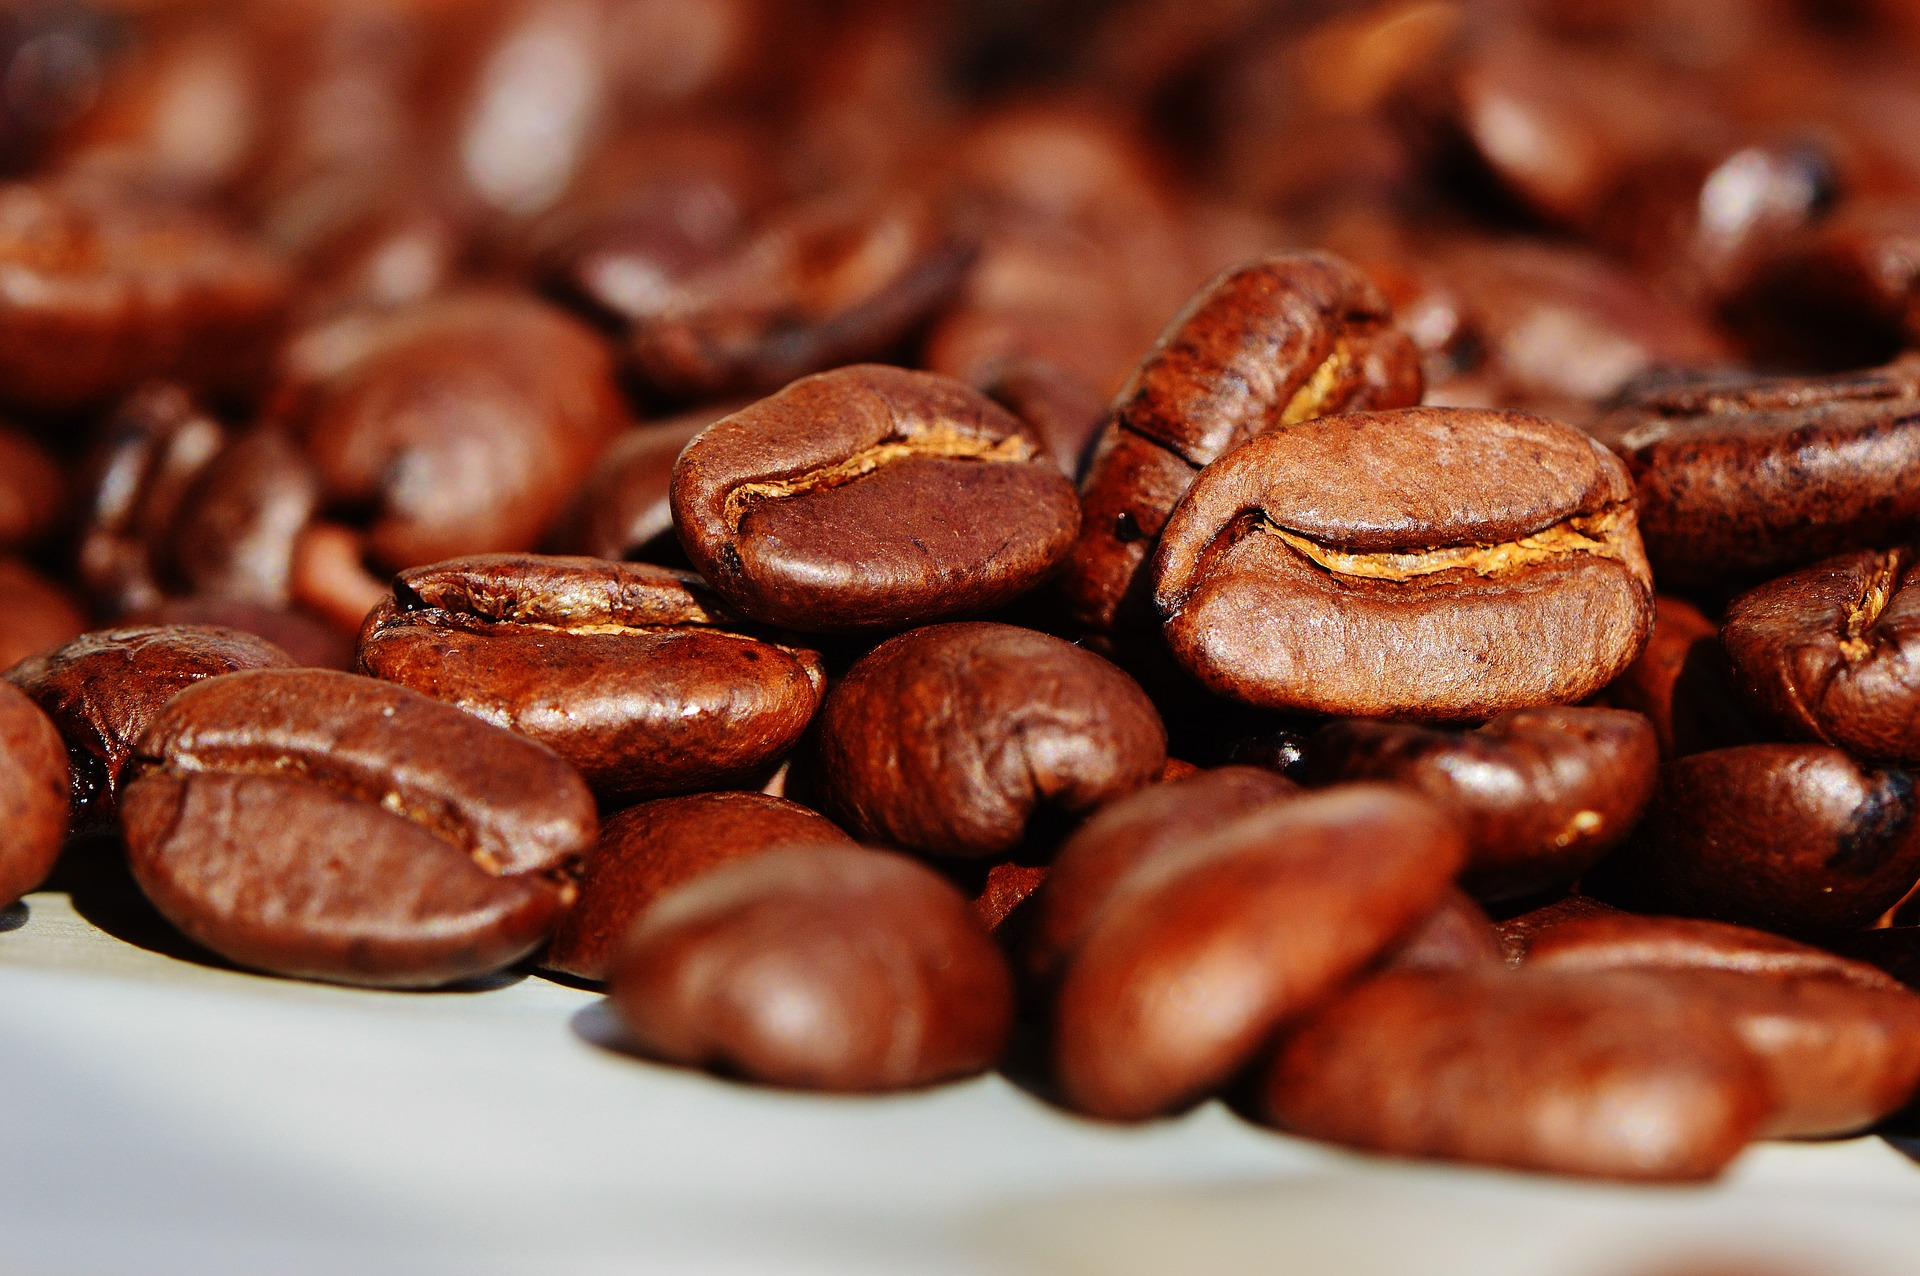 Products with caffeine often use BitterEnd™ to reduce bitterness.